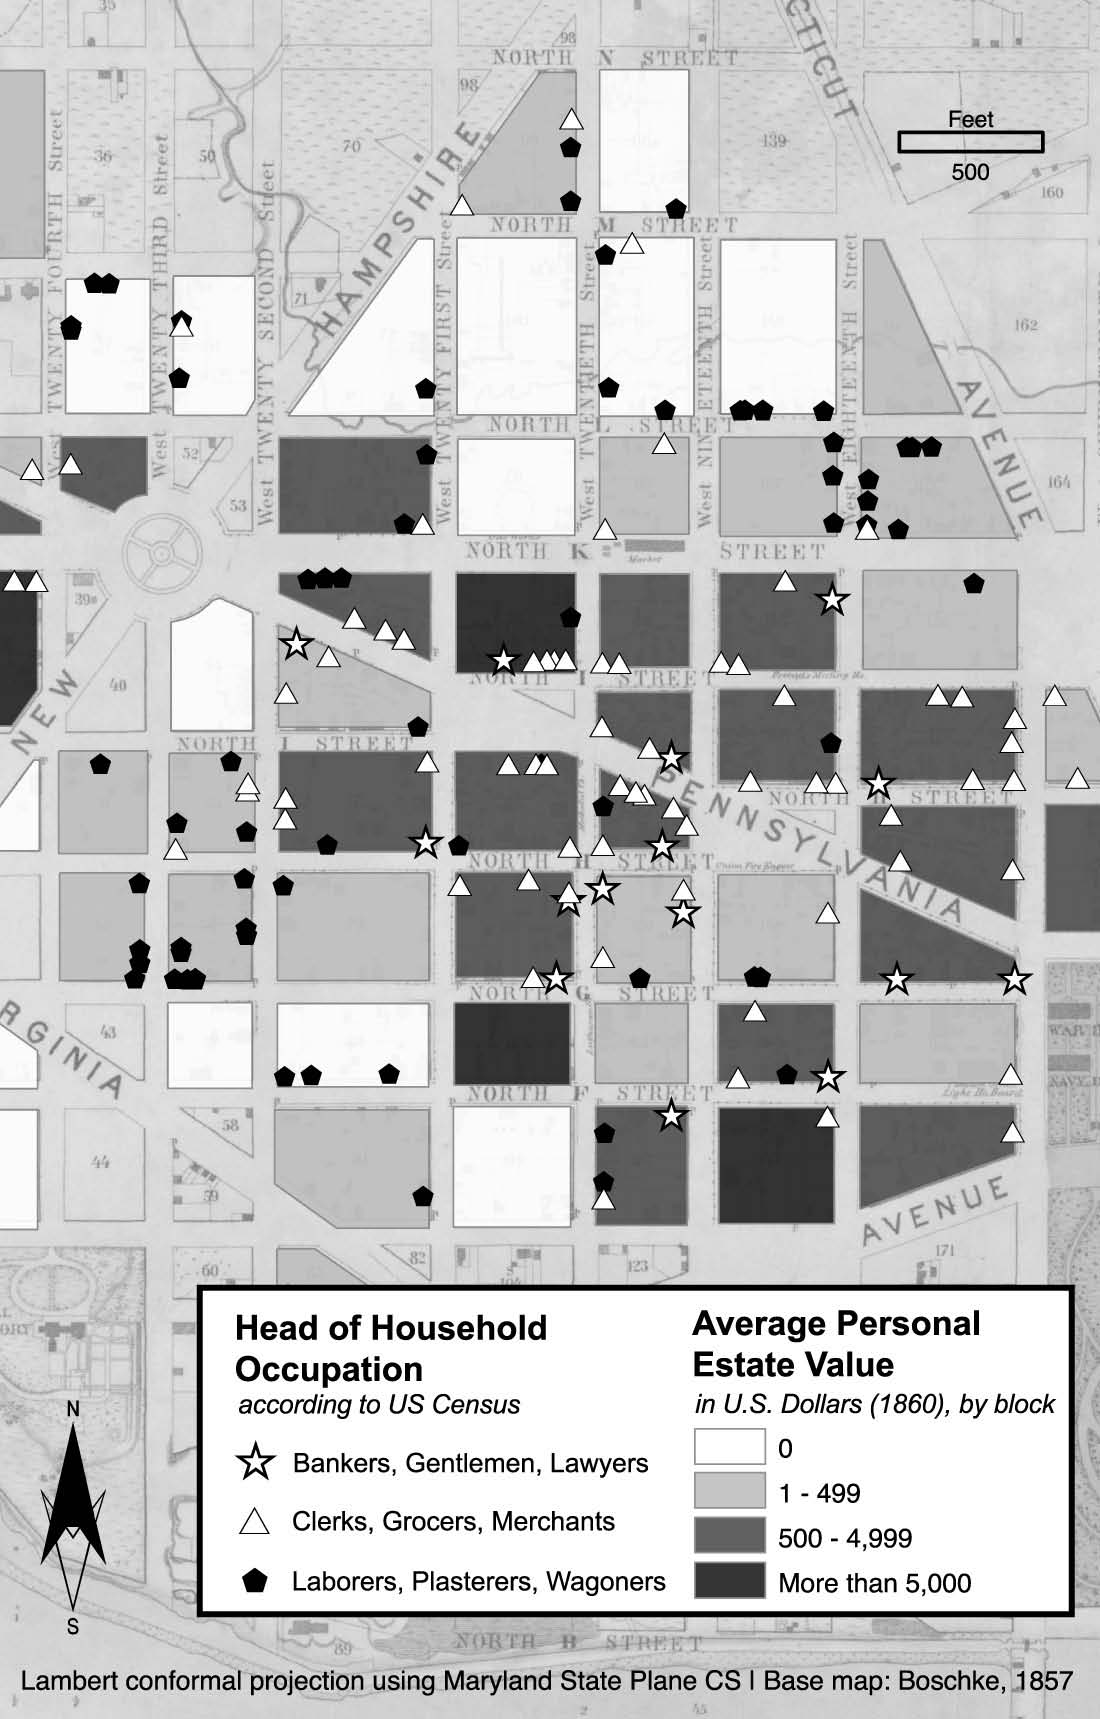 image showing value of average personal estate values depicted on a map of the first ward